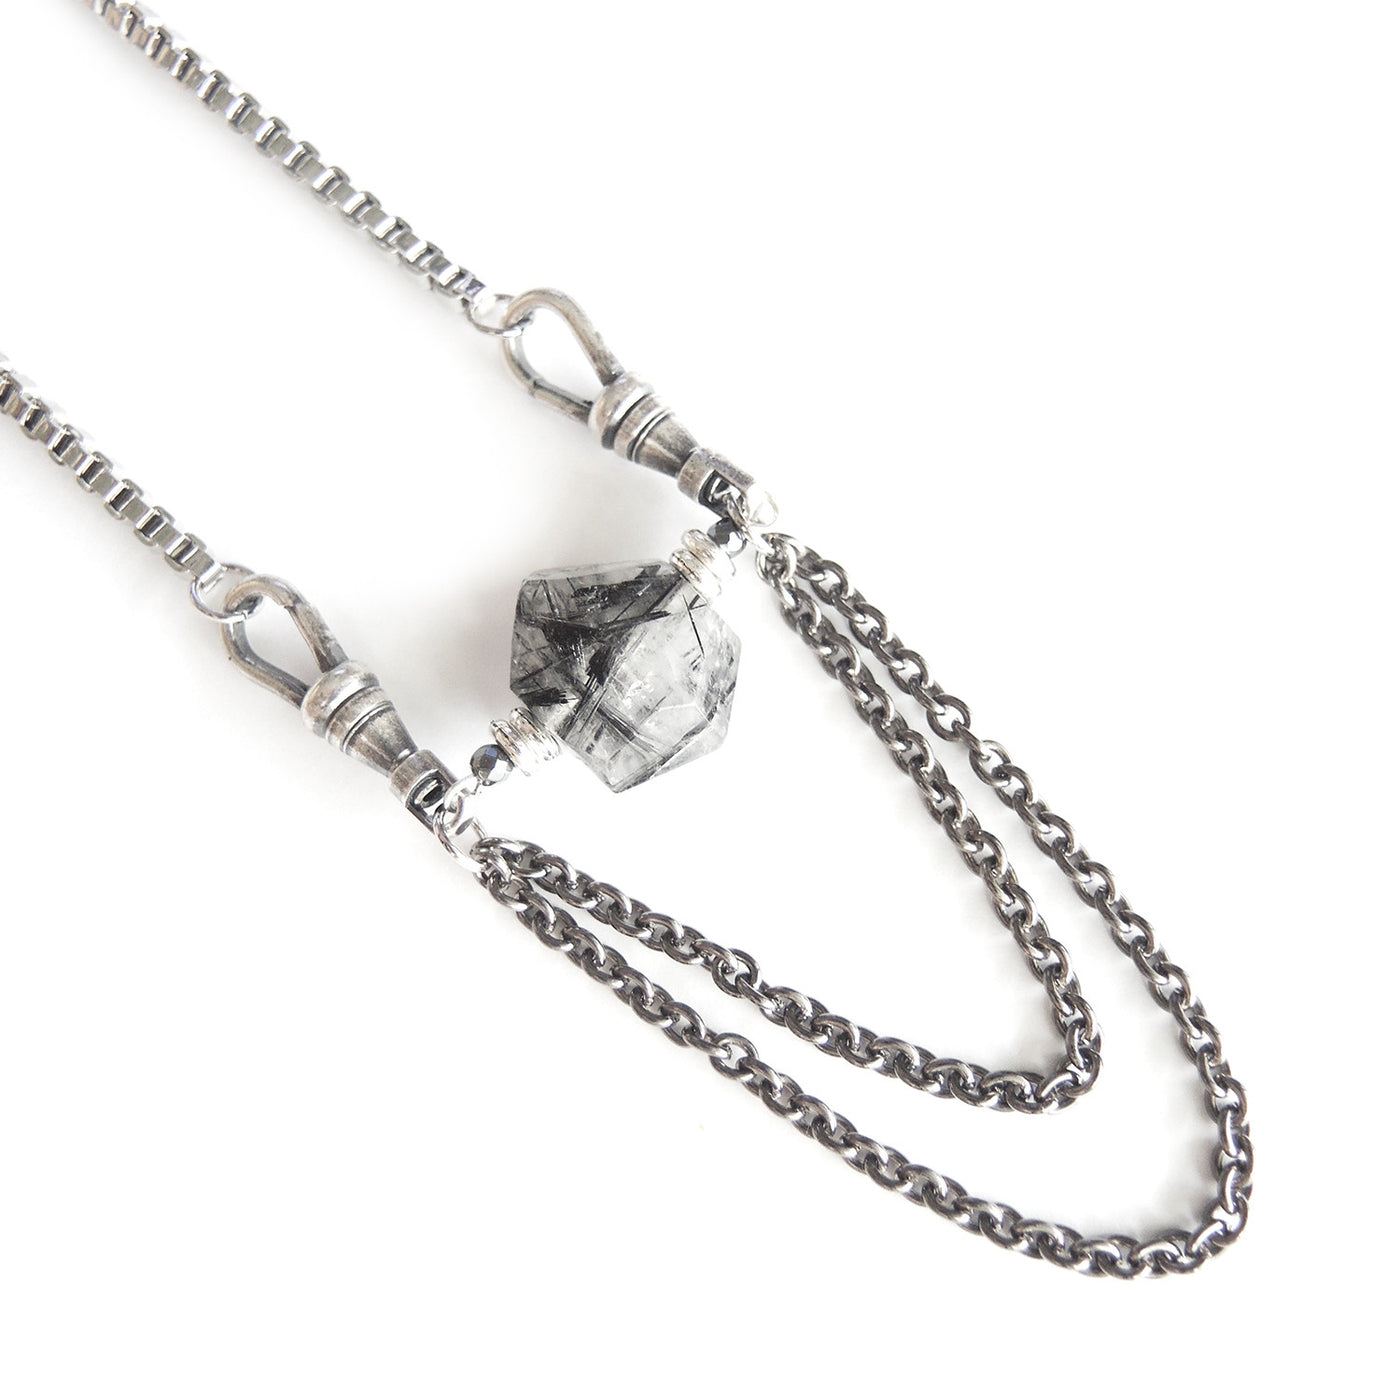 Black Rutilated Quartz Necklace - Chainless Brain